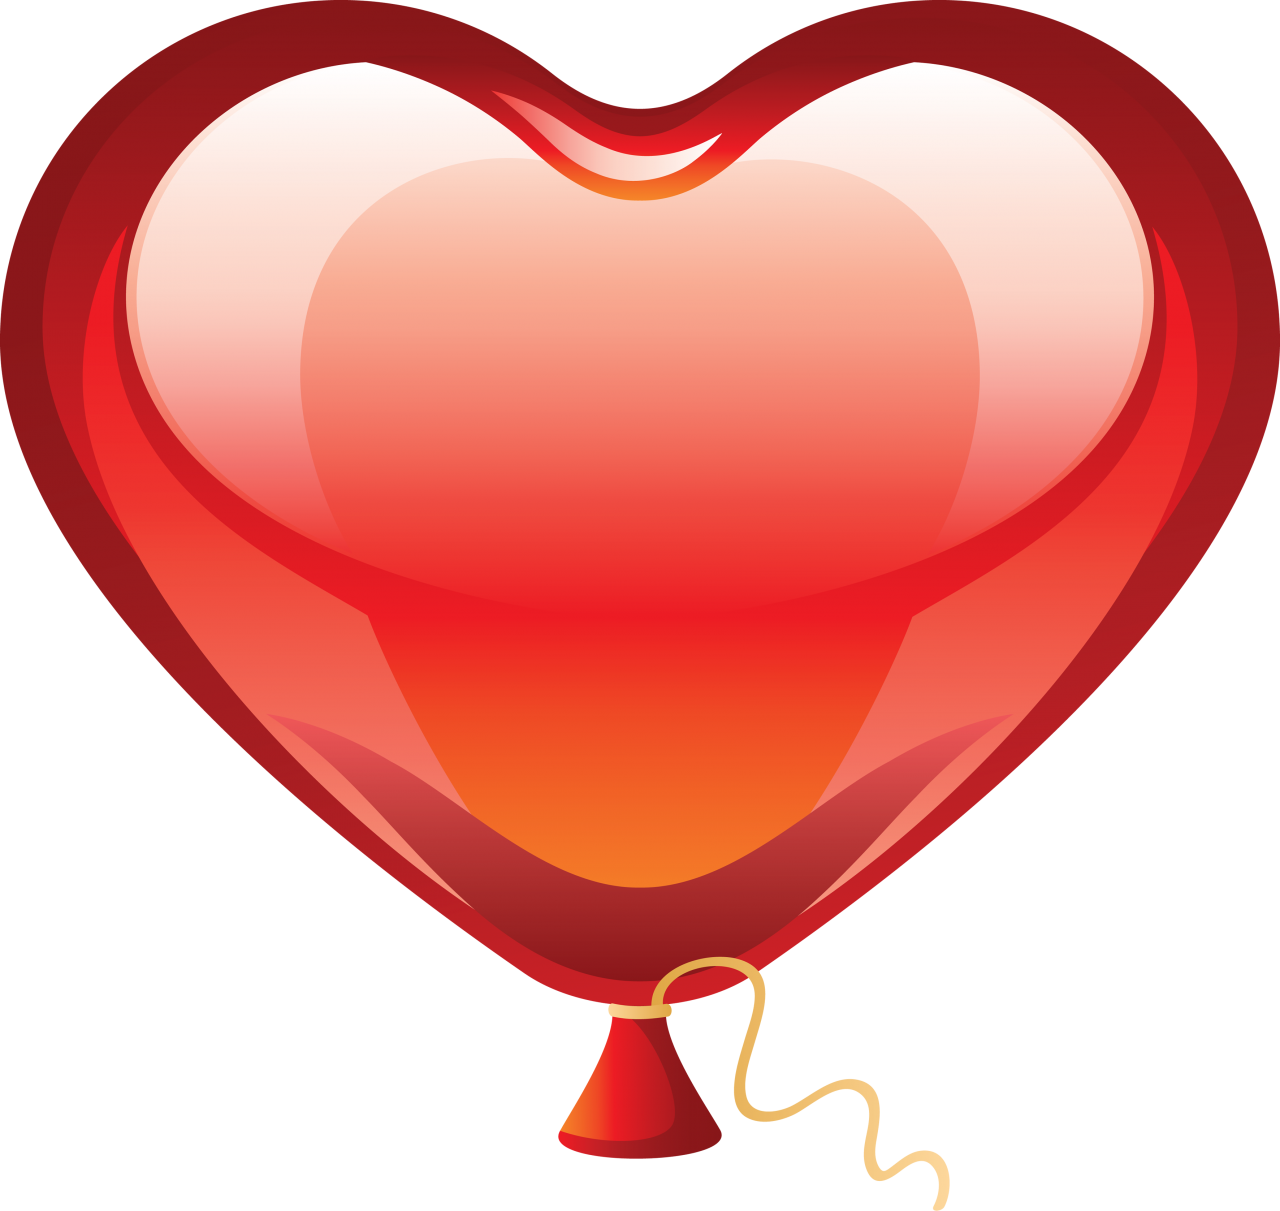 Heart Love Balloon PNG Image